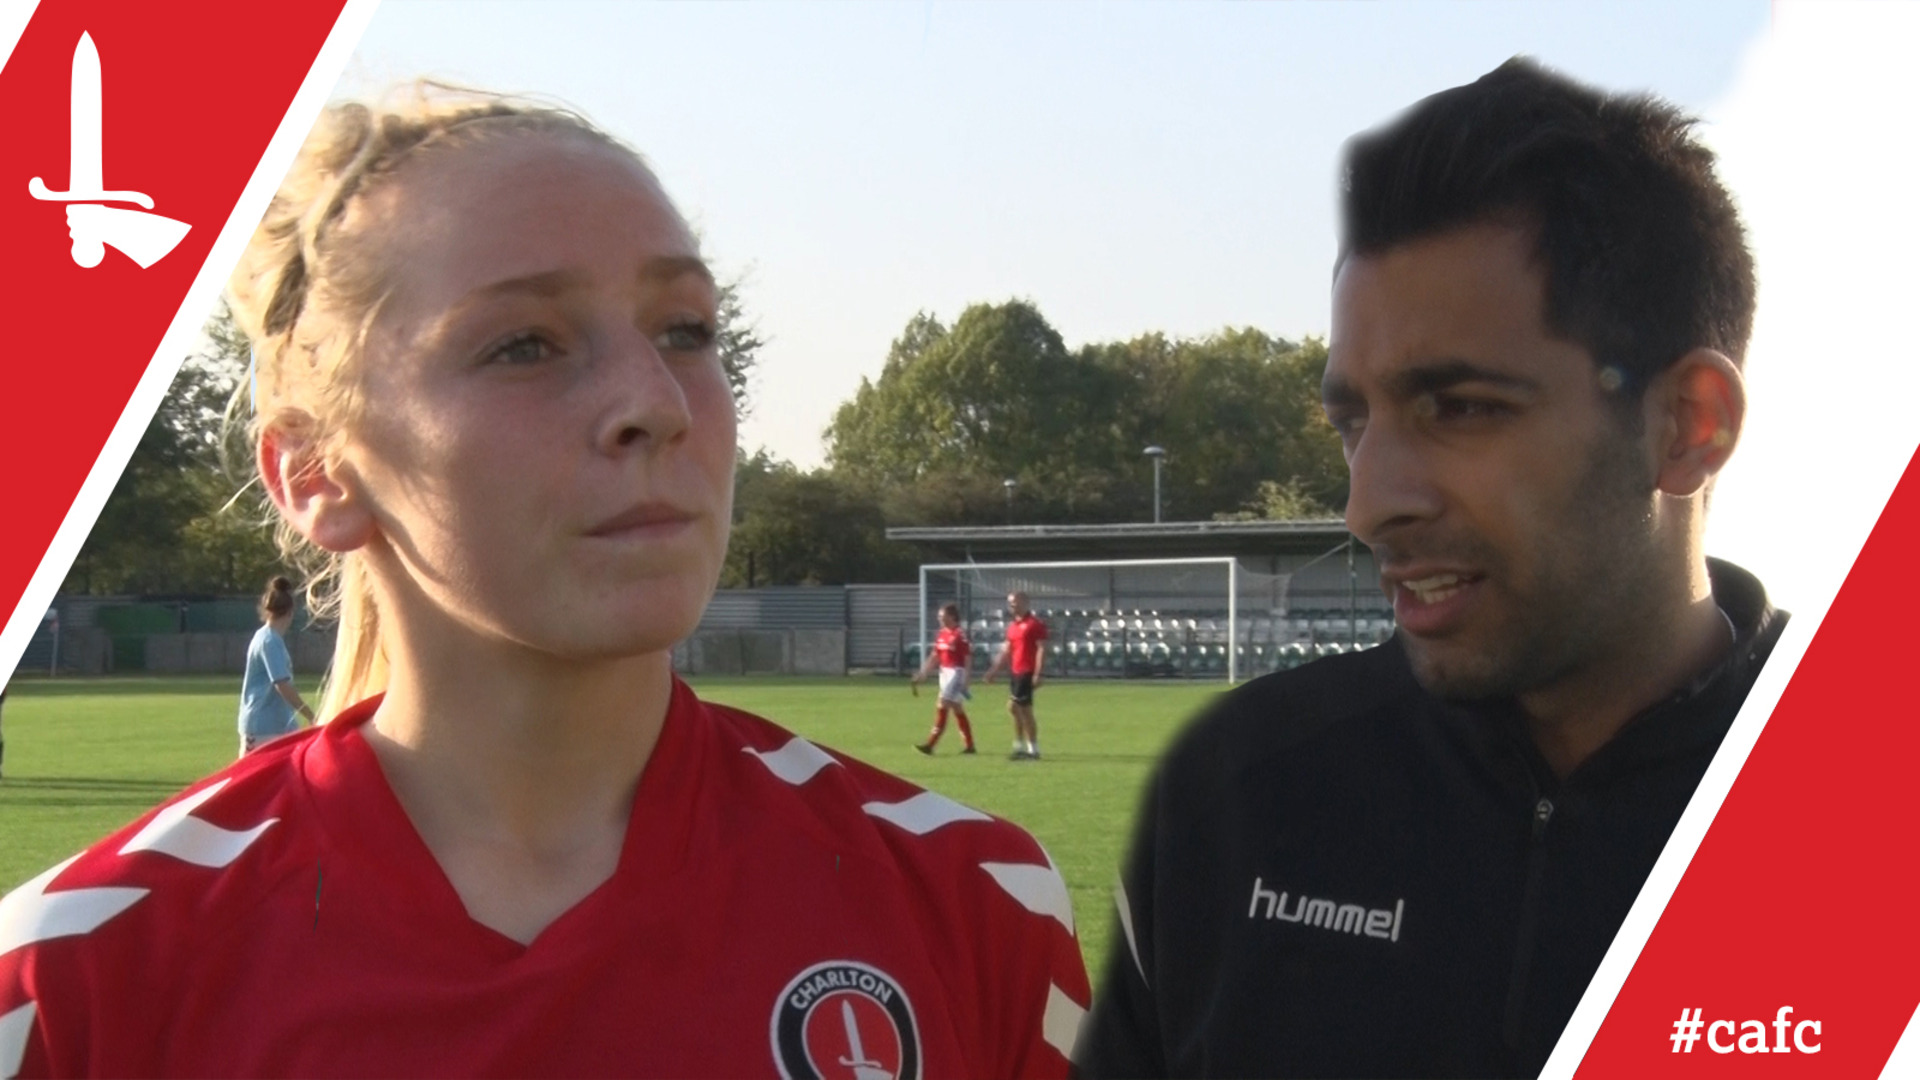 REACTION | Riteesh Mishra and Hope Nash pleased with cup victory